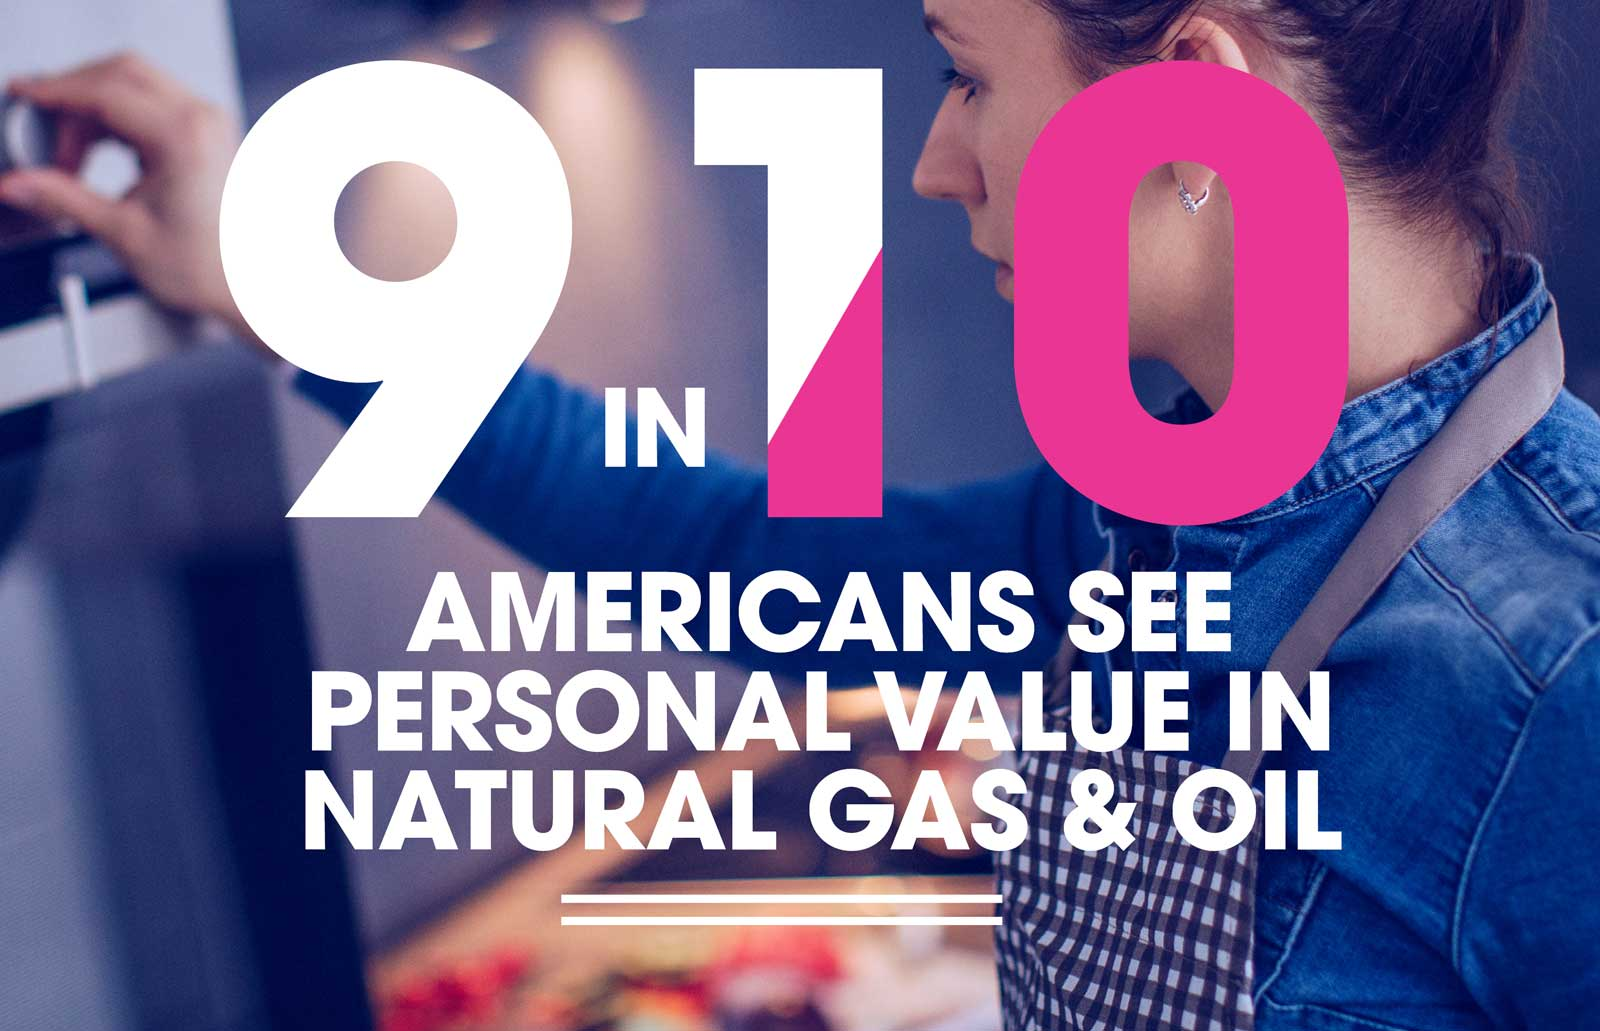 9 in 10 Americans see personal value in natural gas and oil